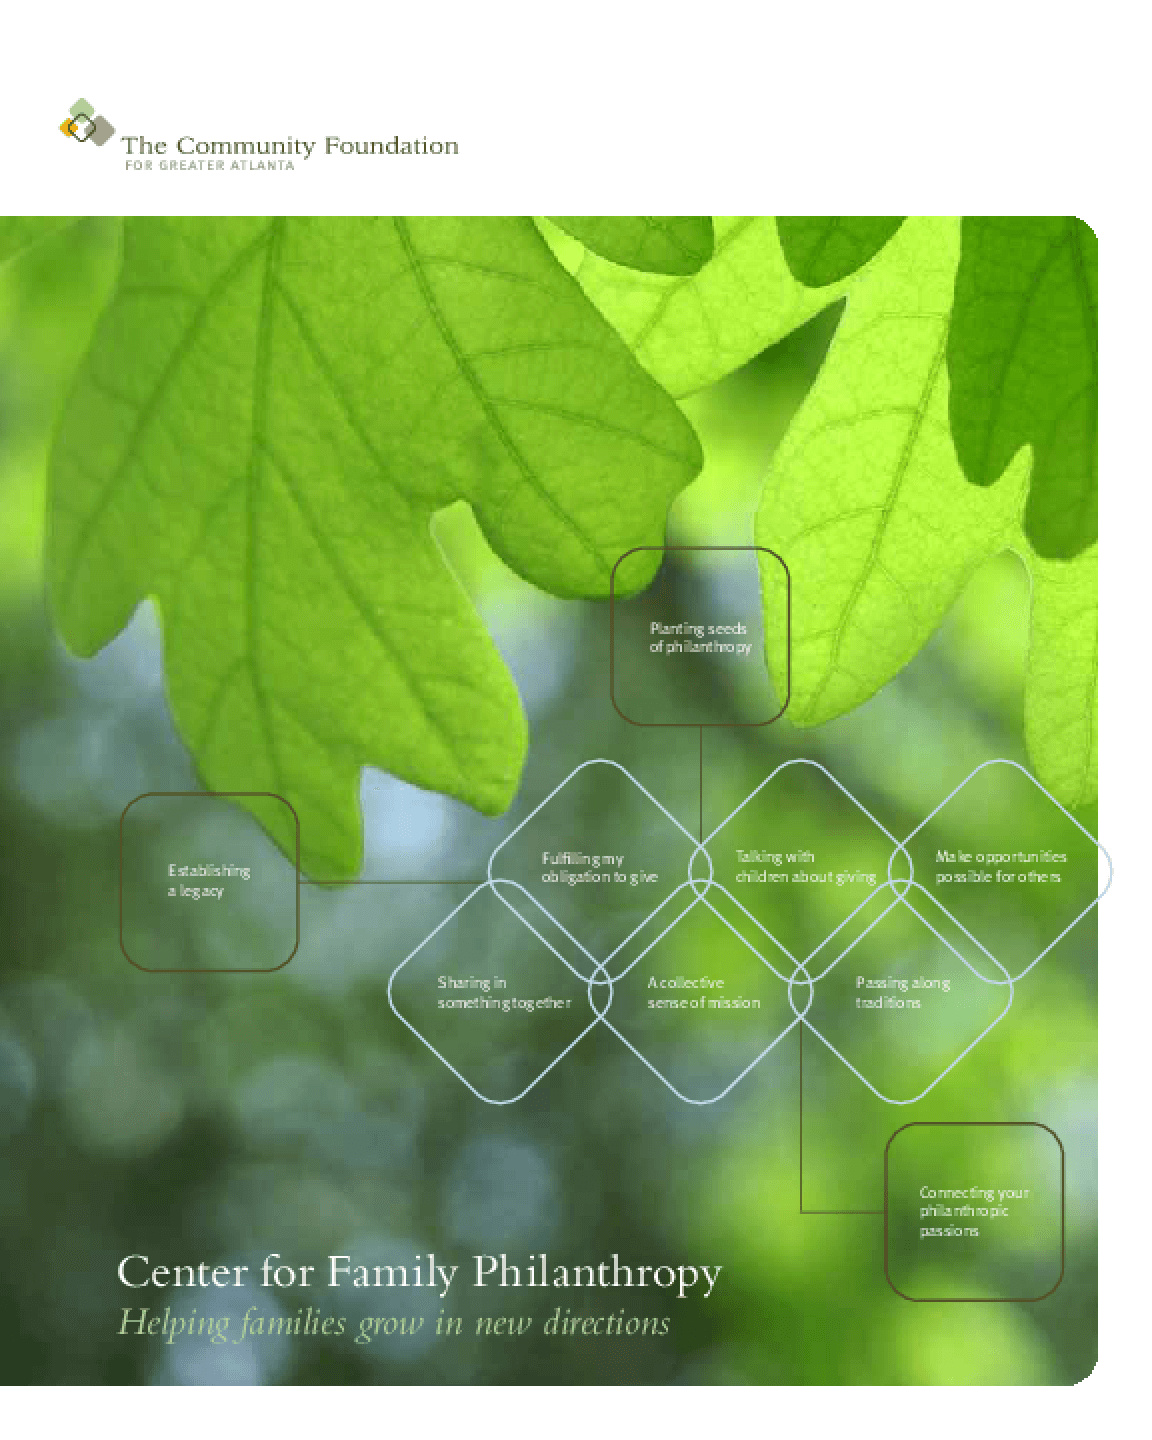 Center for Family Philanthropy: Helping Families Grow in New Directions